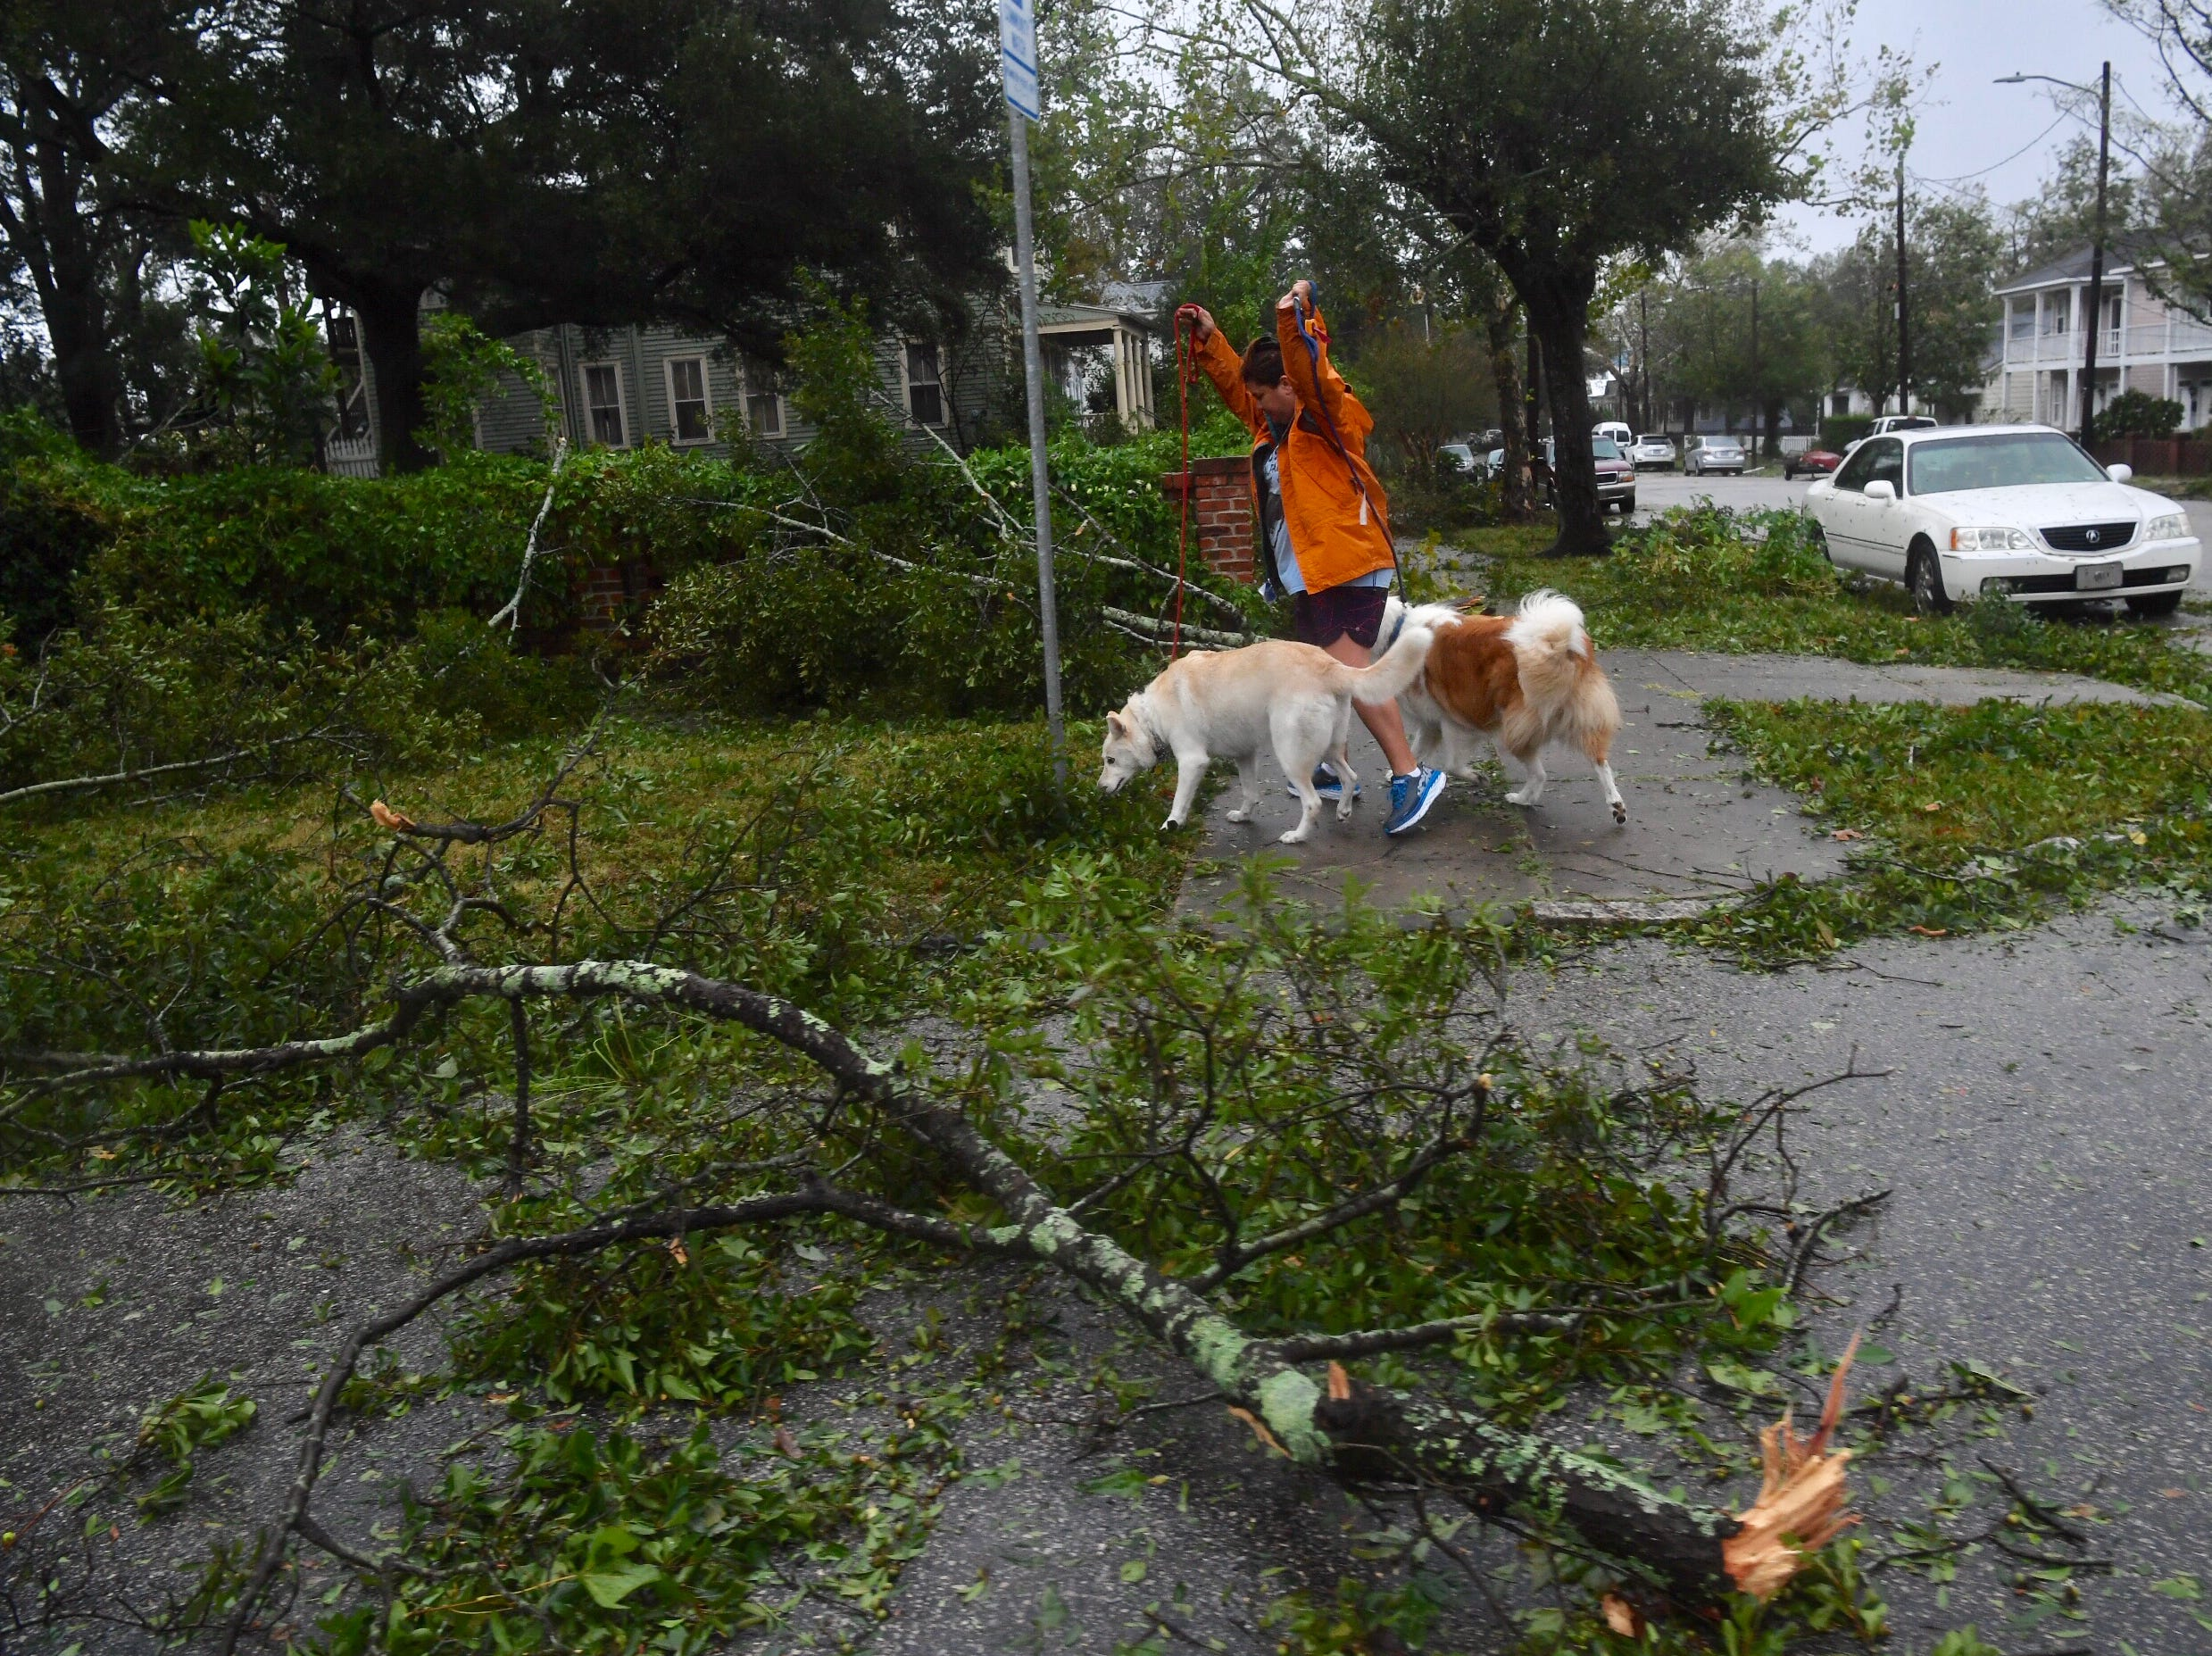 Michelle Kaehny of Wilmington, North Carolina, walks Zeus and Lilly shortly after the brunt of Hurricane Florence passed Friday, Sept. 14, 2018, following landfall near Wrightsville Beach.